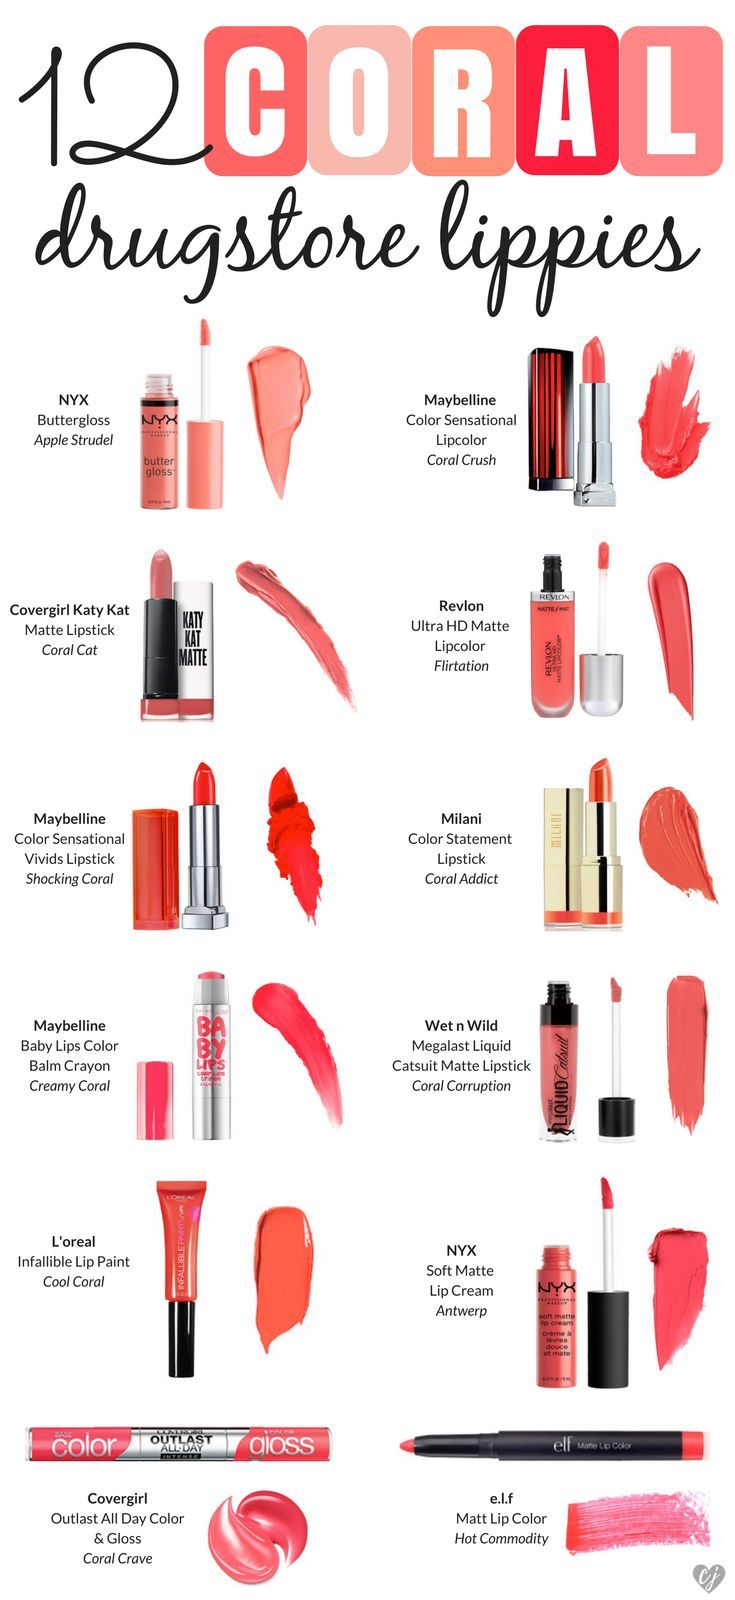 Top 12 Coral Drugstore Lip Products for spring and summer! Check out these affor...